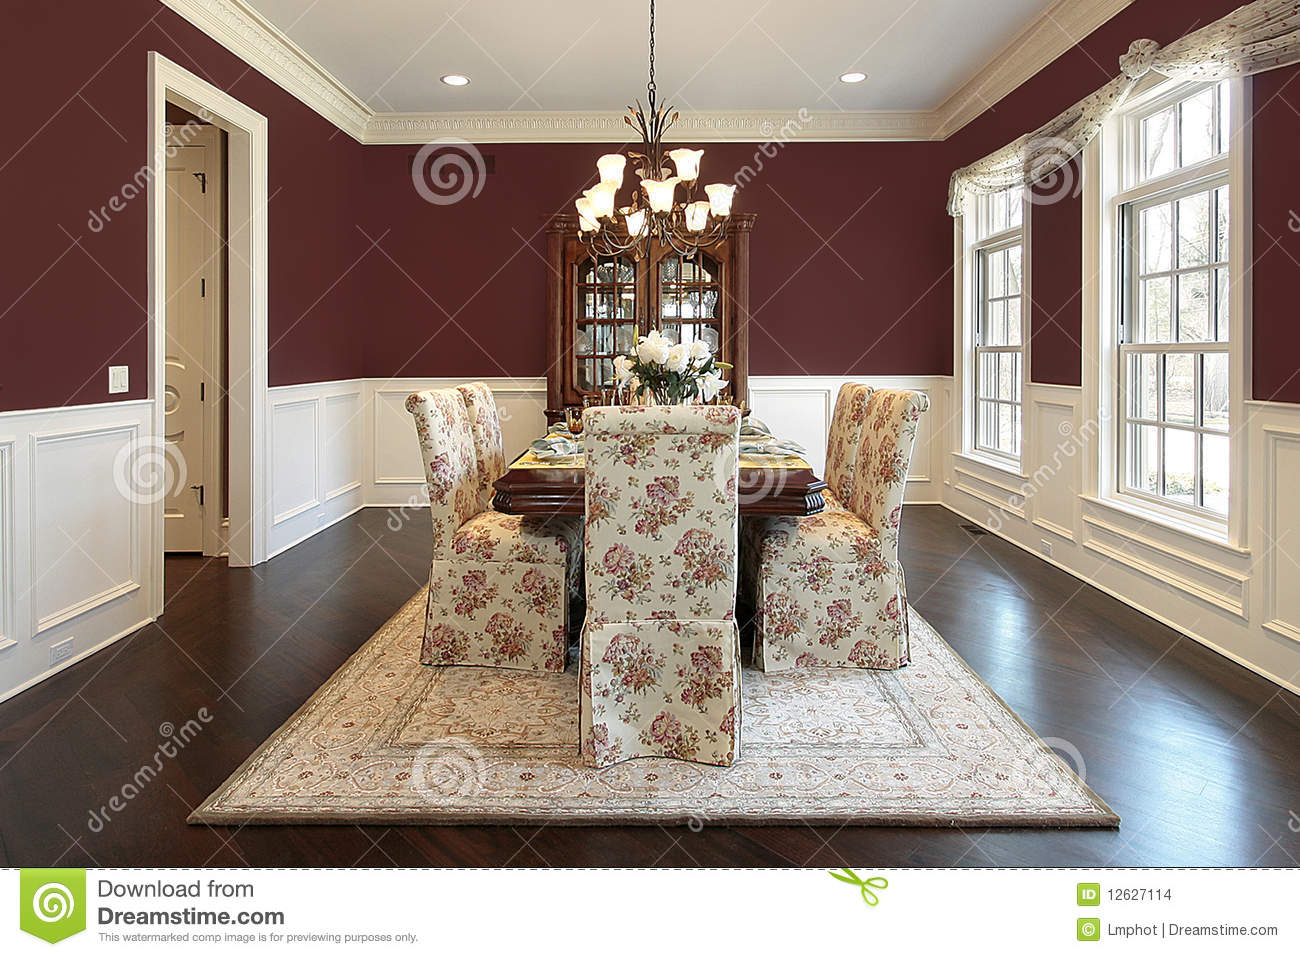 Dining Room With Red Walls Stock Photo Image Of Design 12627114